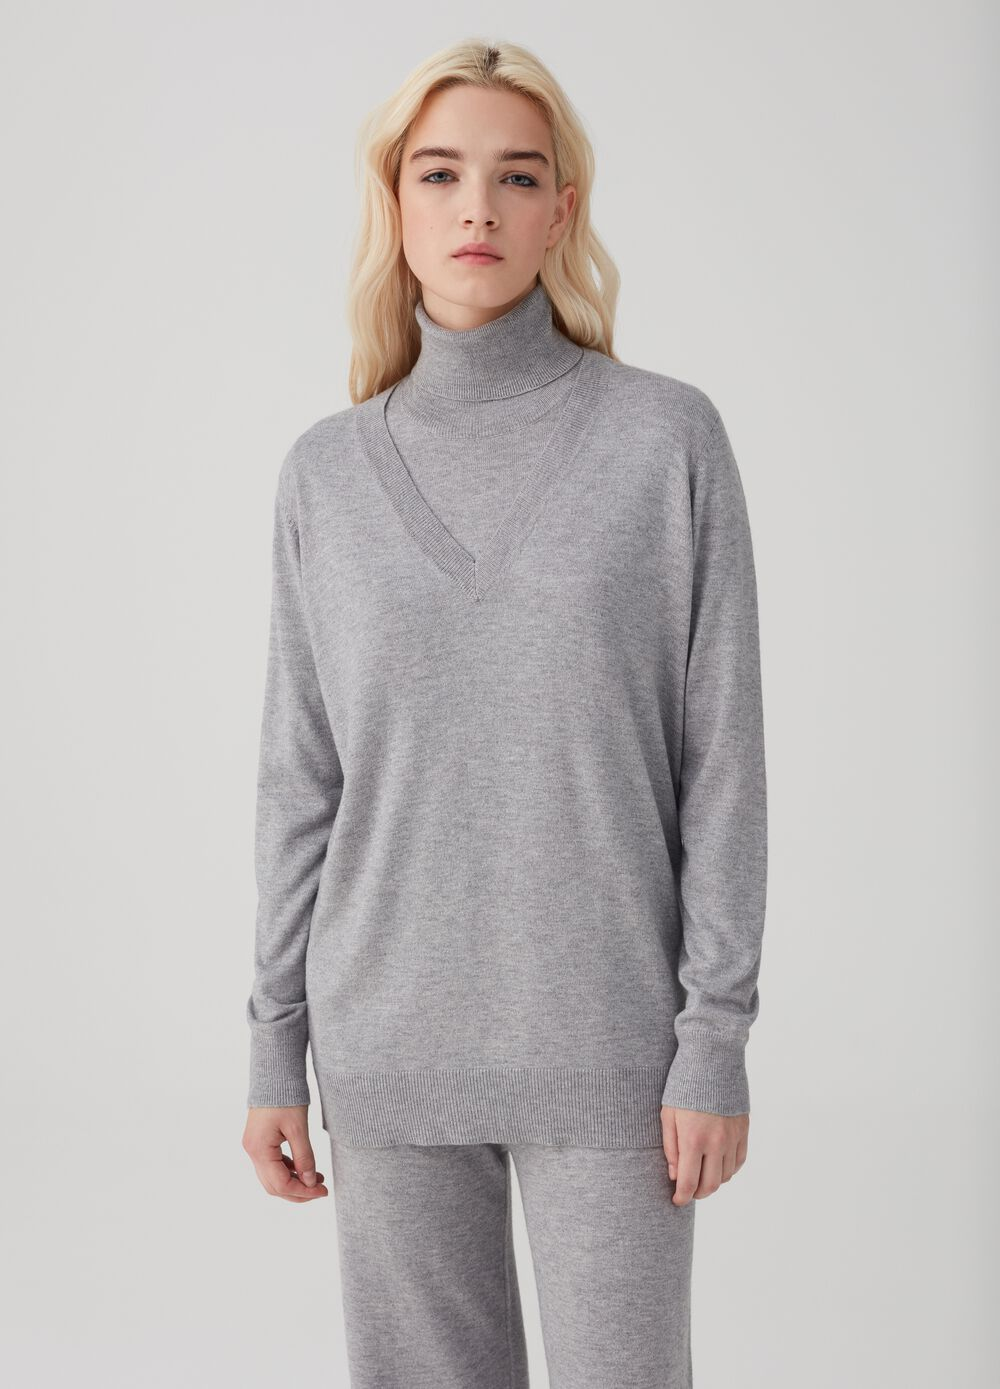 Pullover with V-neck and ribbing.